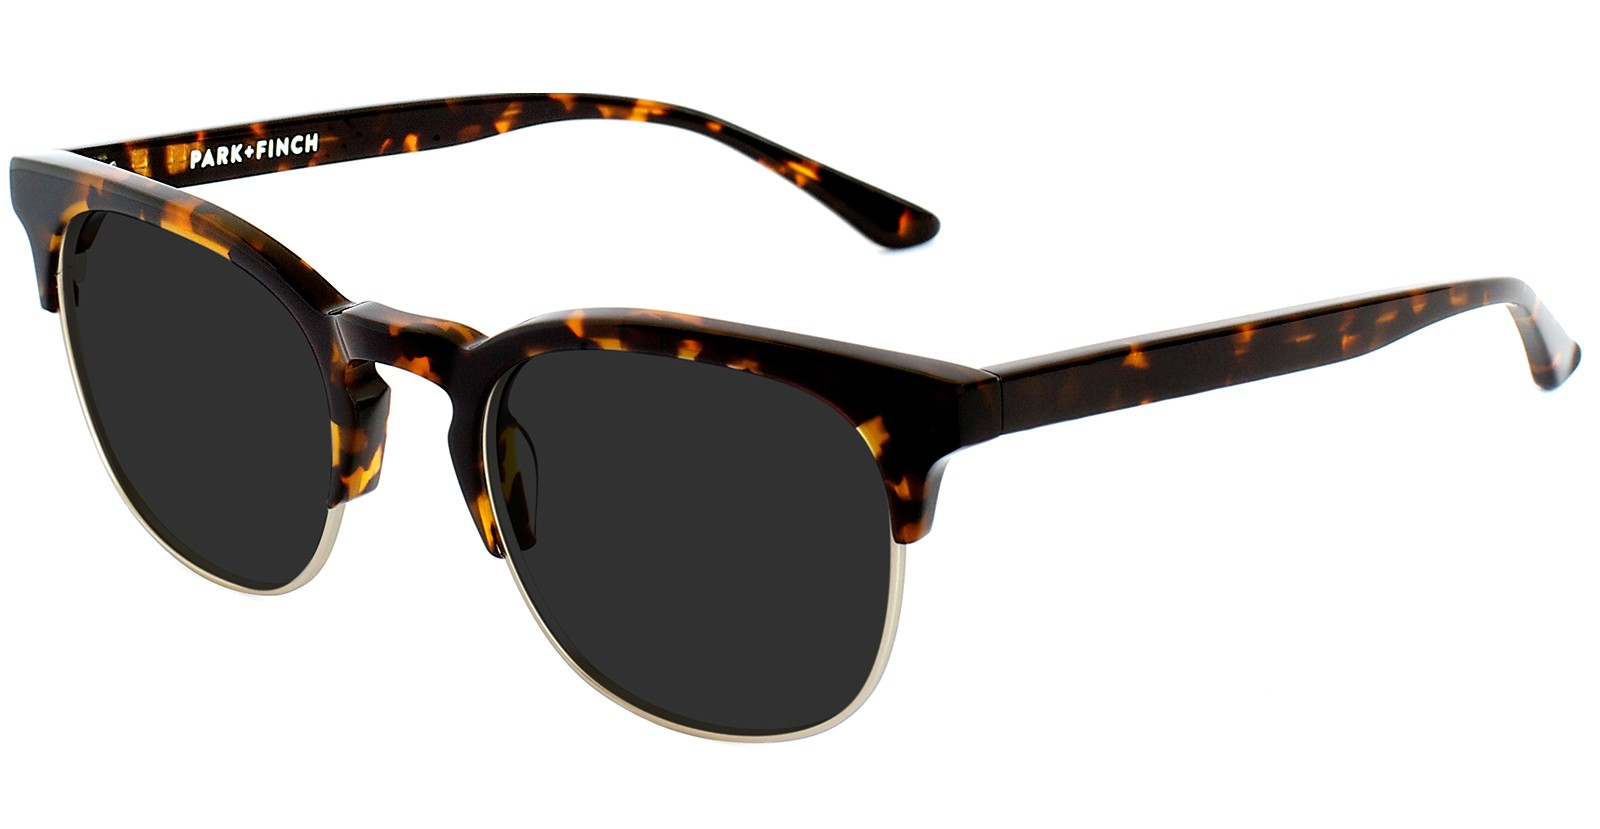 76cc81085be Atticus Polarized Sunglasses in Tortoise and Silver